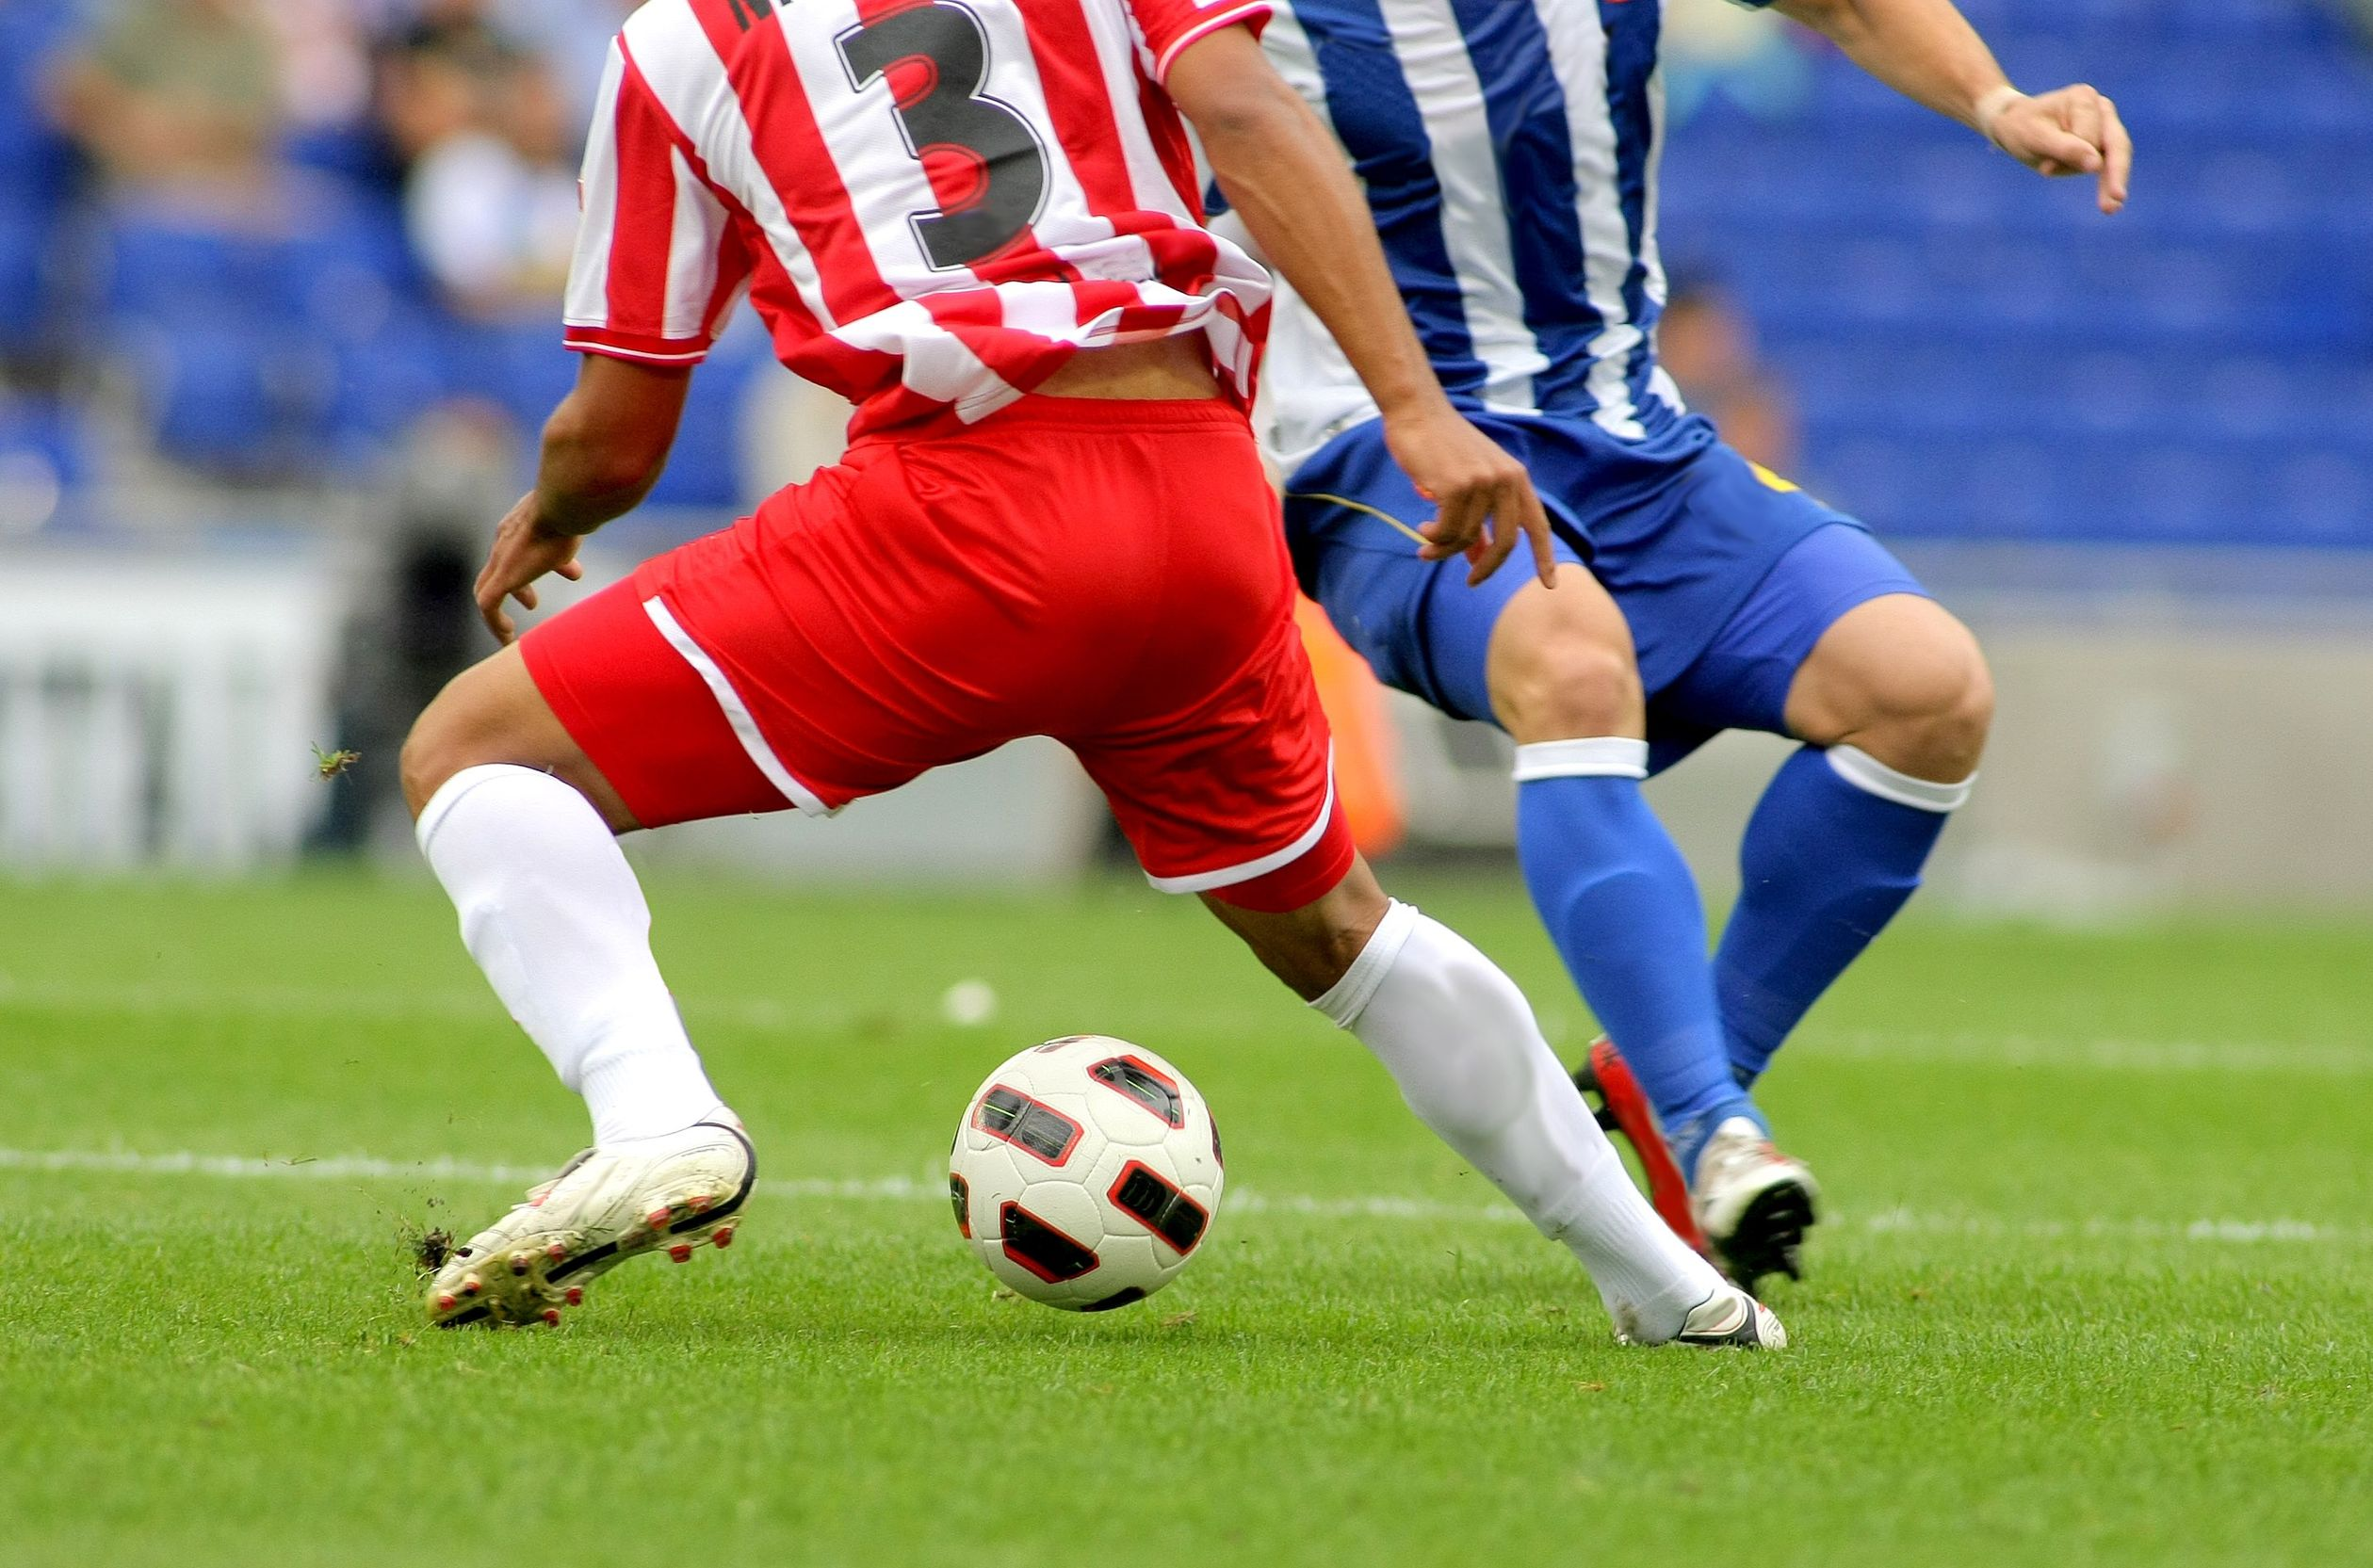 7919685 - soccer player legs in action